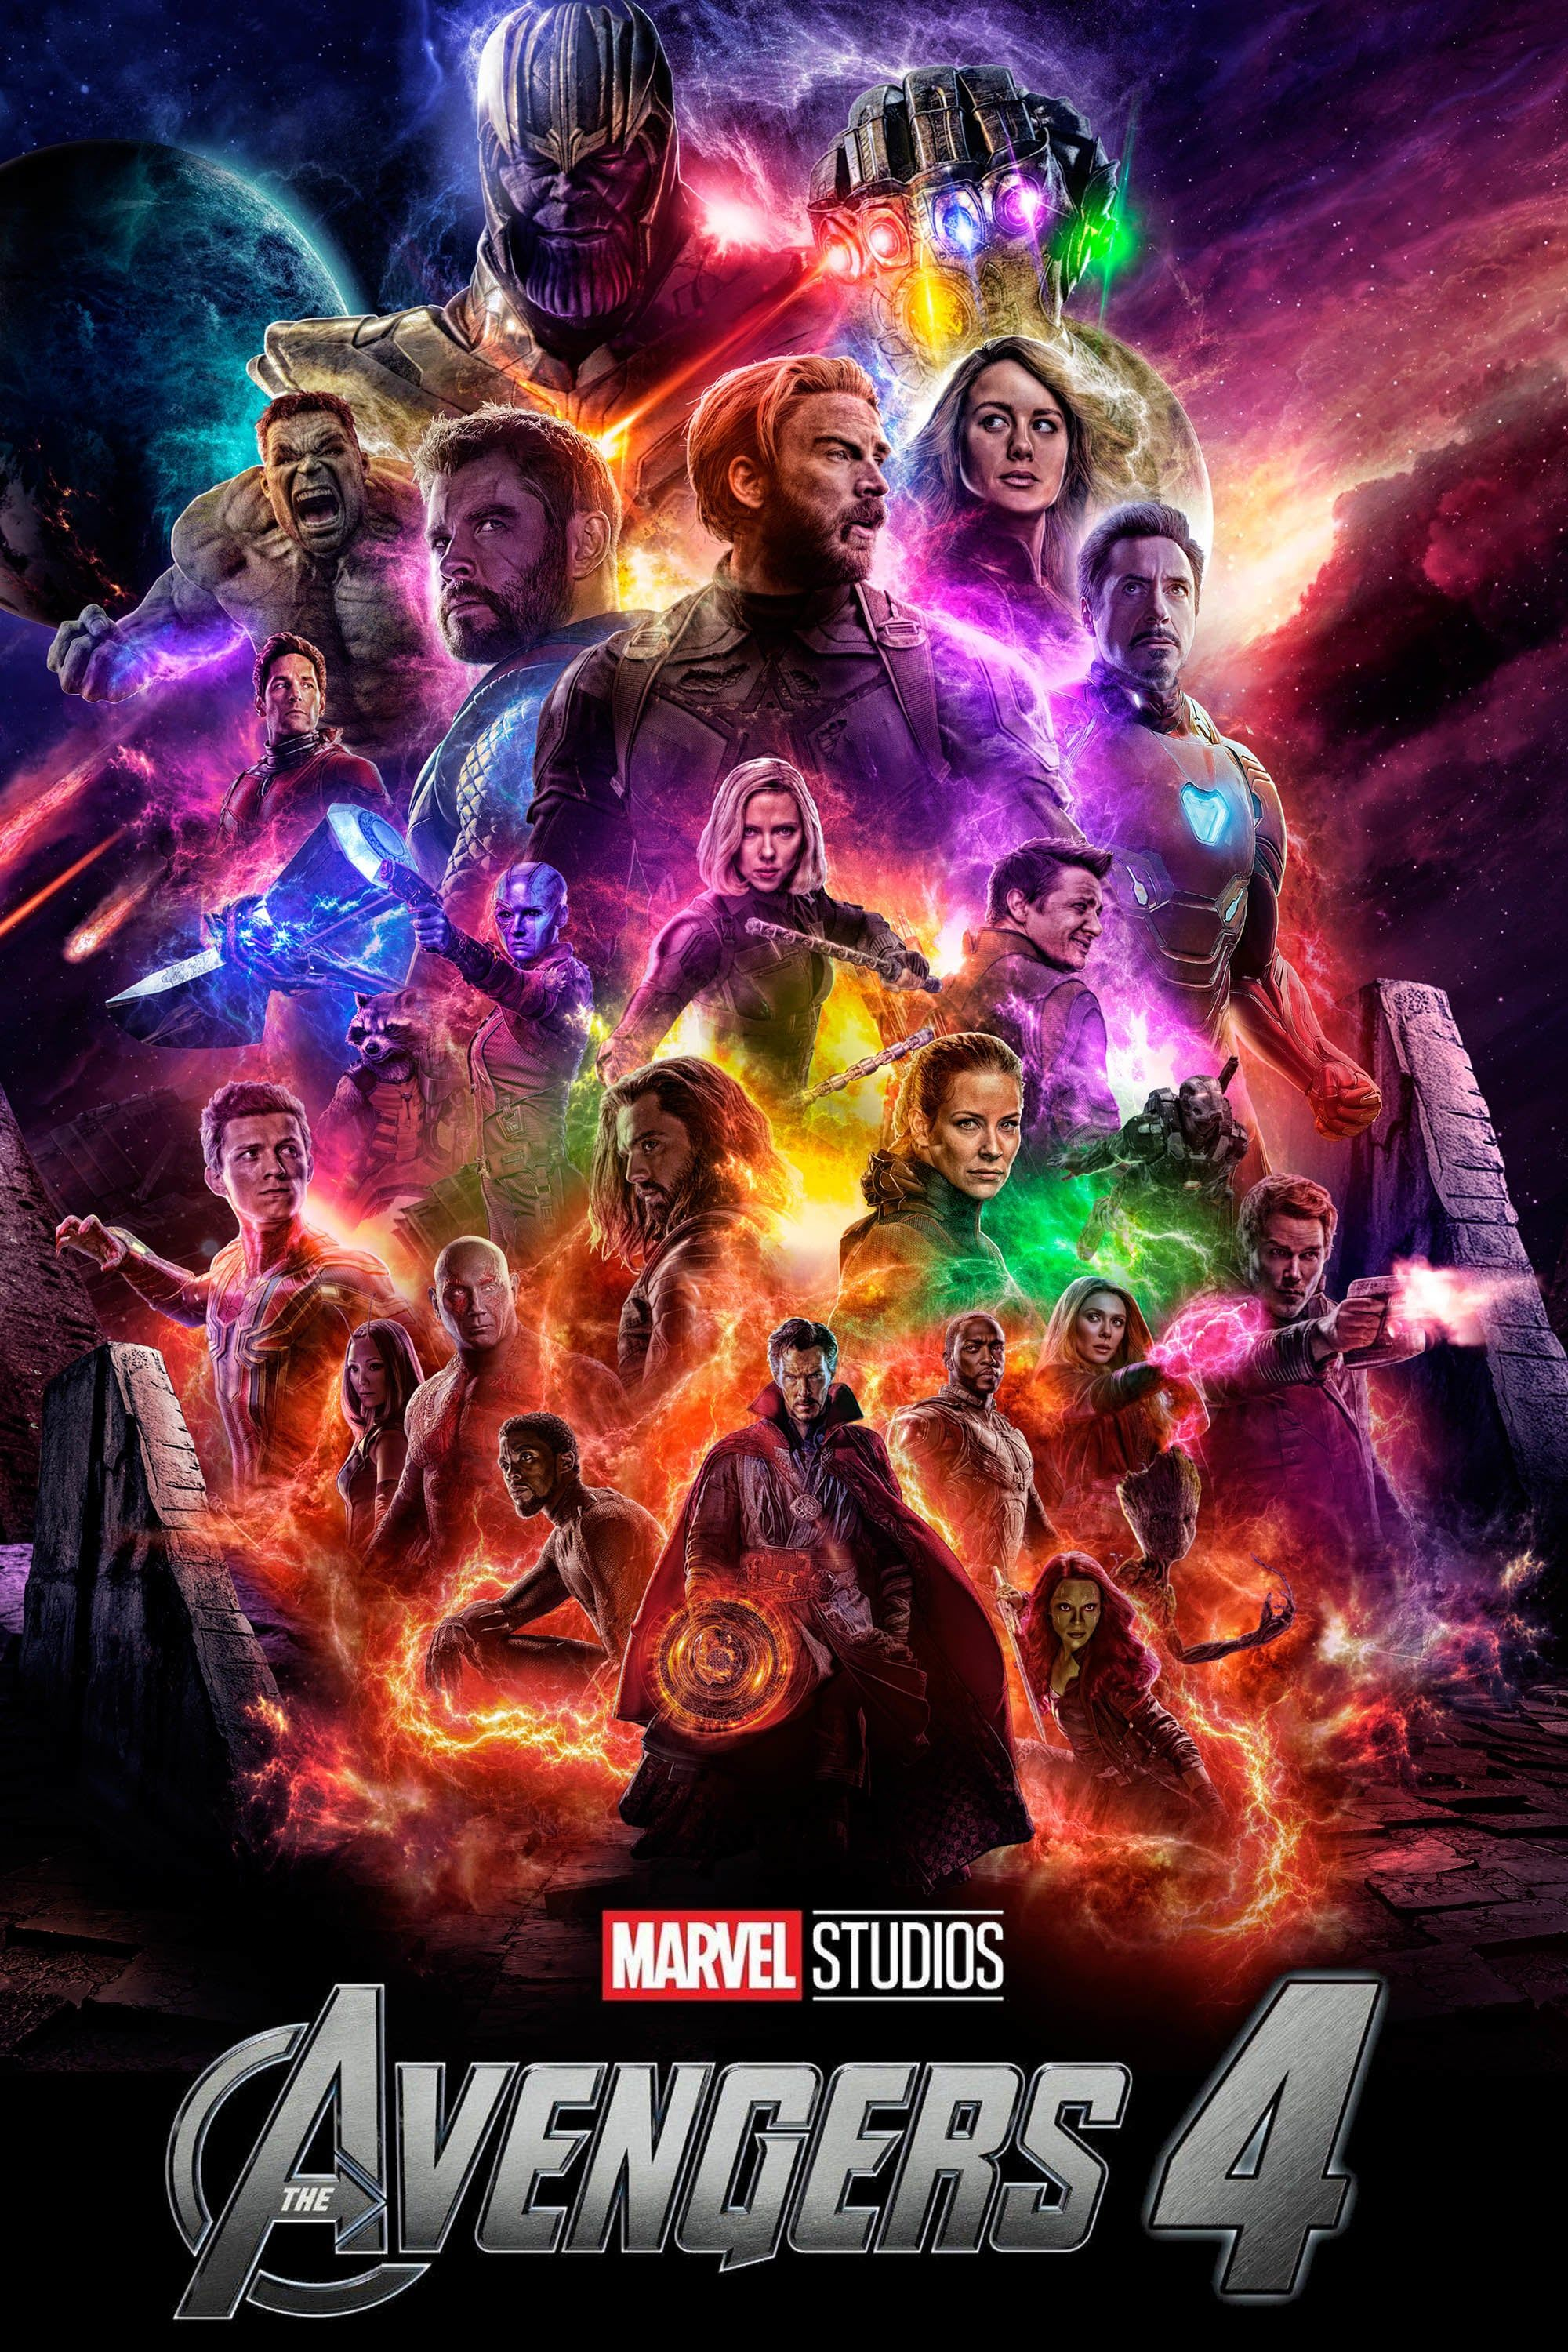 In Theaters April 26 2019! The official Marvel page for Avengers Endgame Watch the trailer and be the first to find out all filmrelated info!